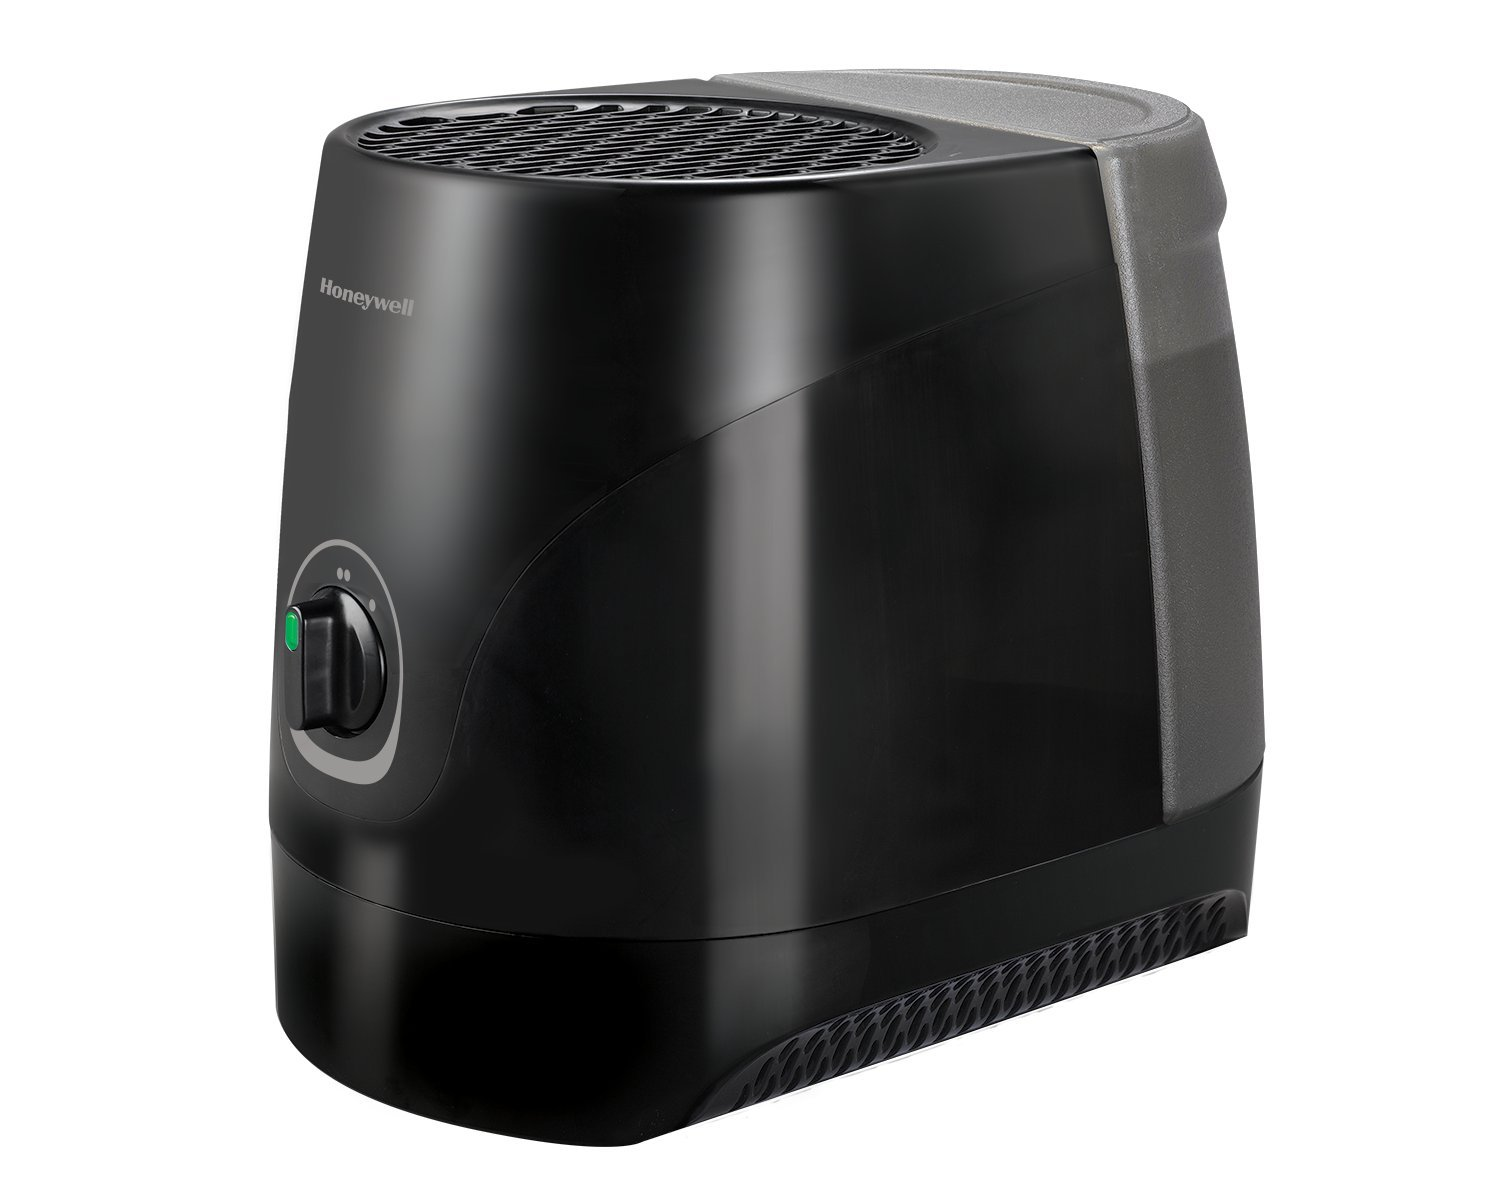 Best Honeywell Humidifier: HEV320B